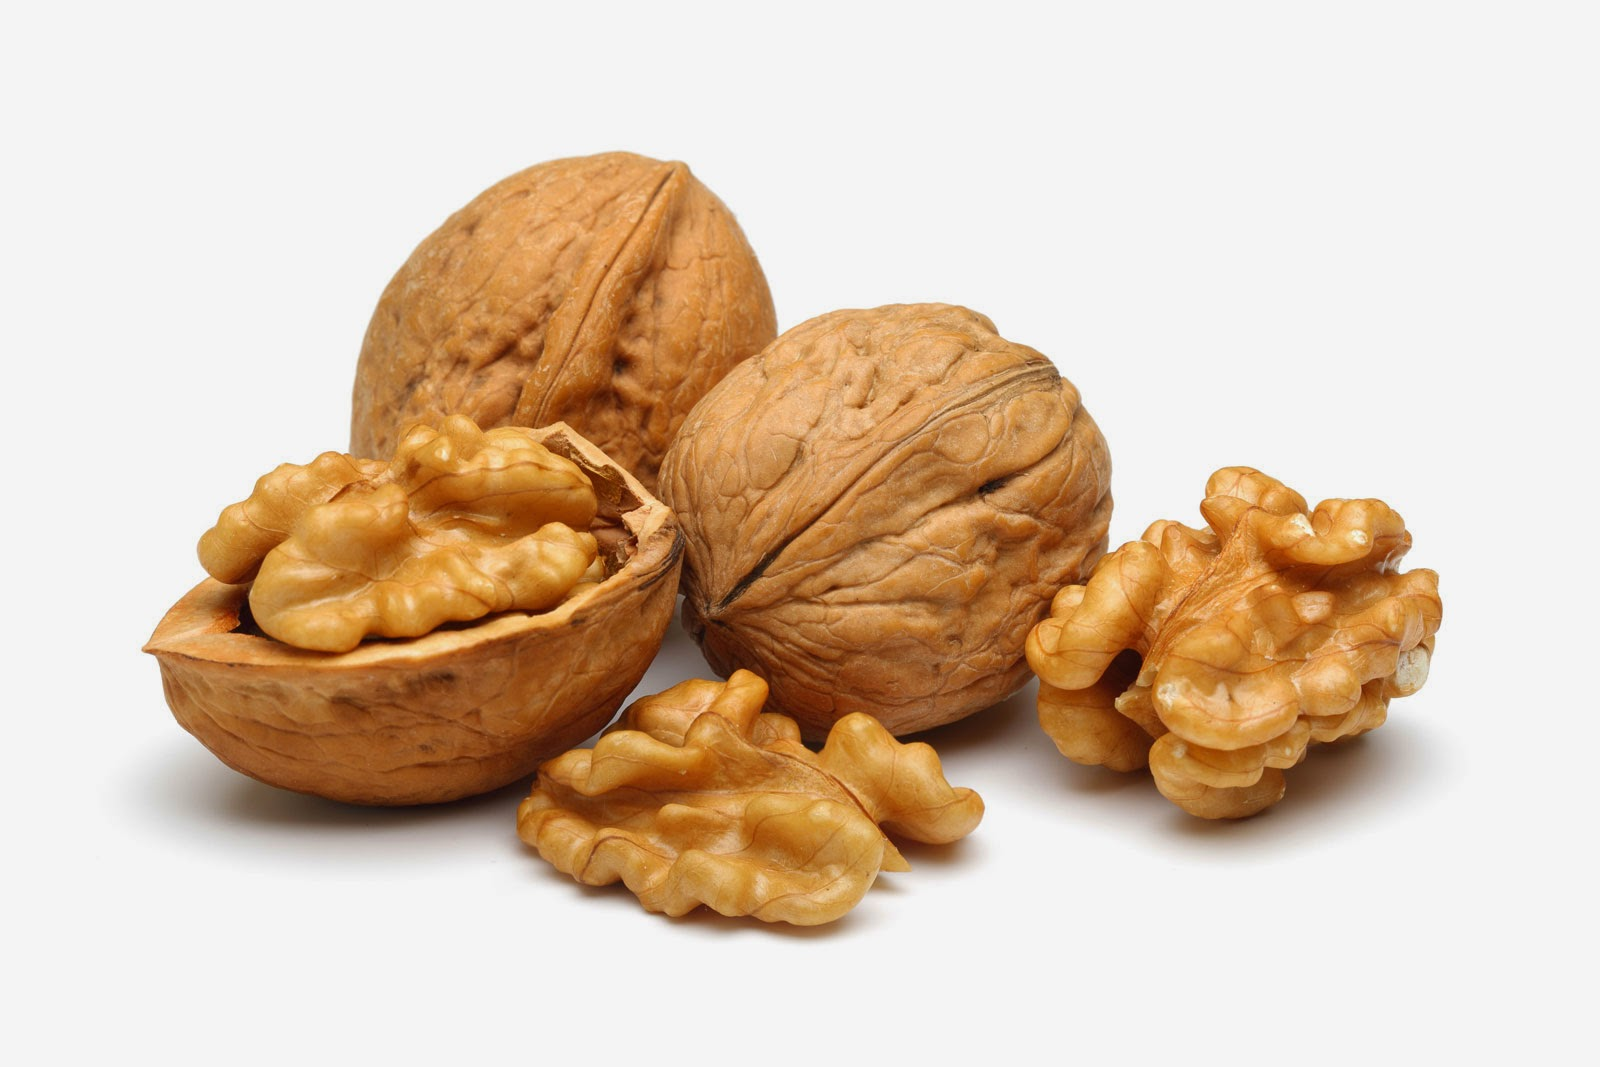 Healthy Food - Walnut